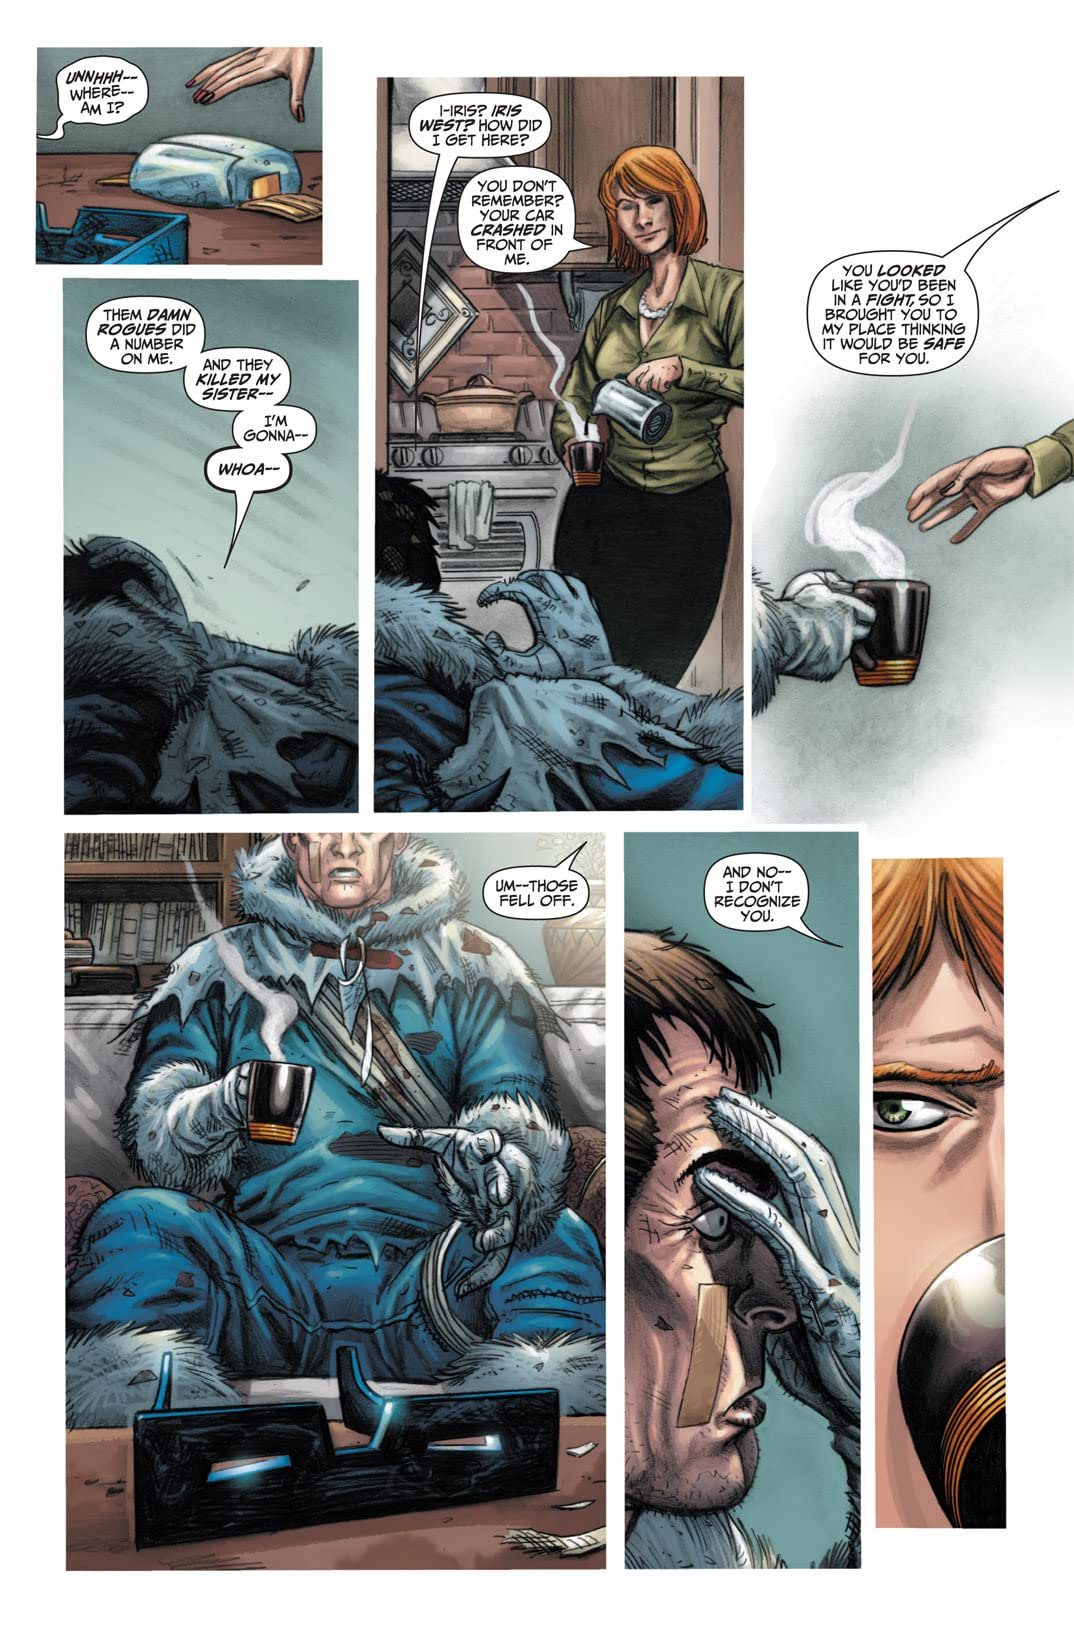 Flashpoint: Citizen Cold #3 (of 3)